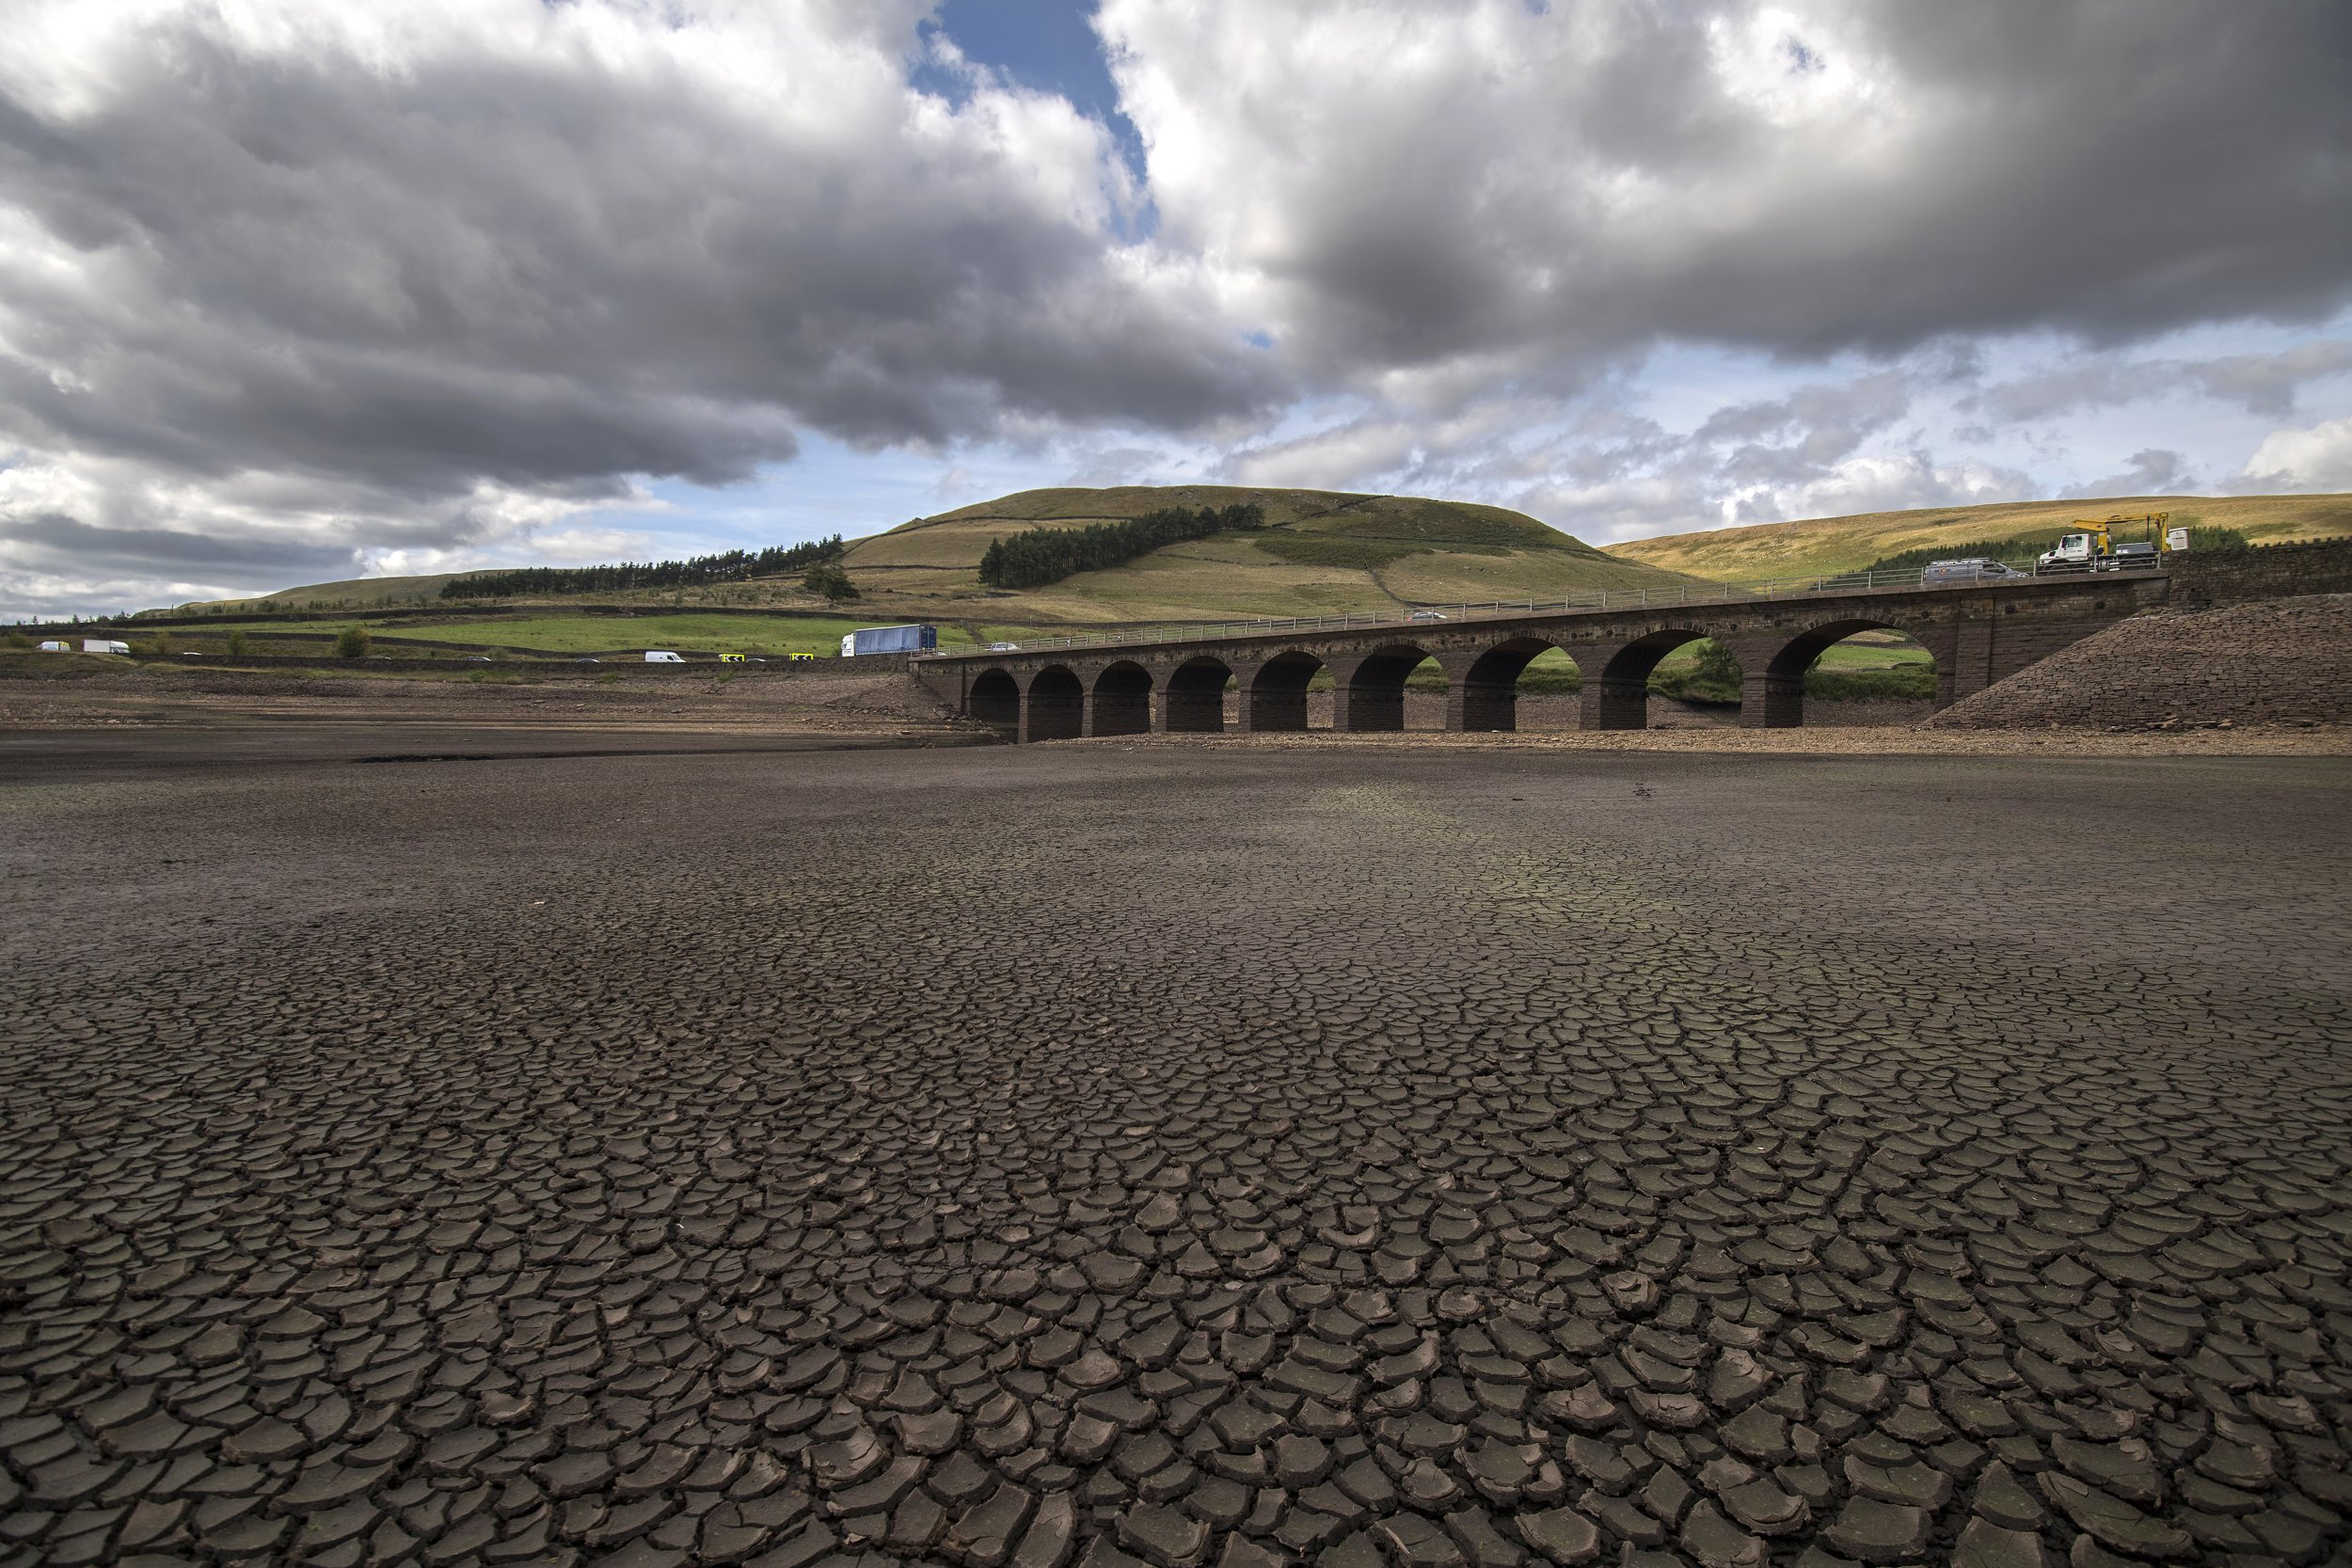 MANCHESTER, ENGLAND - SEPTEMBER 13: Woodhead bridge on the A628 stands above the water line as the bottom of Woodhead reservoir is exposed due to low water levels in the Longdendale reservoirs following a long dry summer on September 13, 2018 in Derbyshire, England. When completed in 1877, the six mile long chain of reservoirs built by John Frederick La Trope Bateman was the largest reservoir system in the world and Europe's first major construction scheme (Photo by Anthony Devlin/Getty Images)